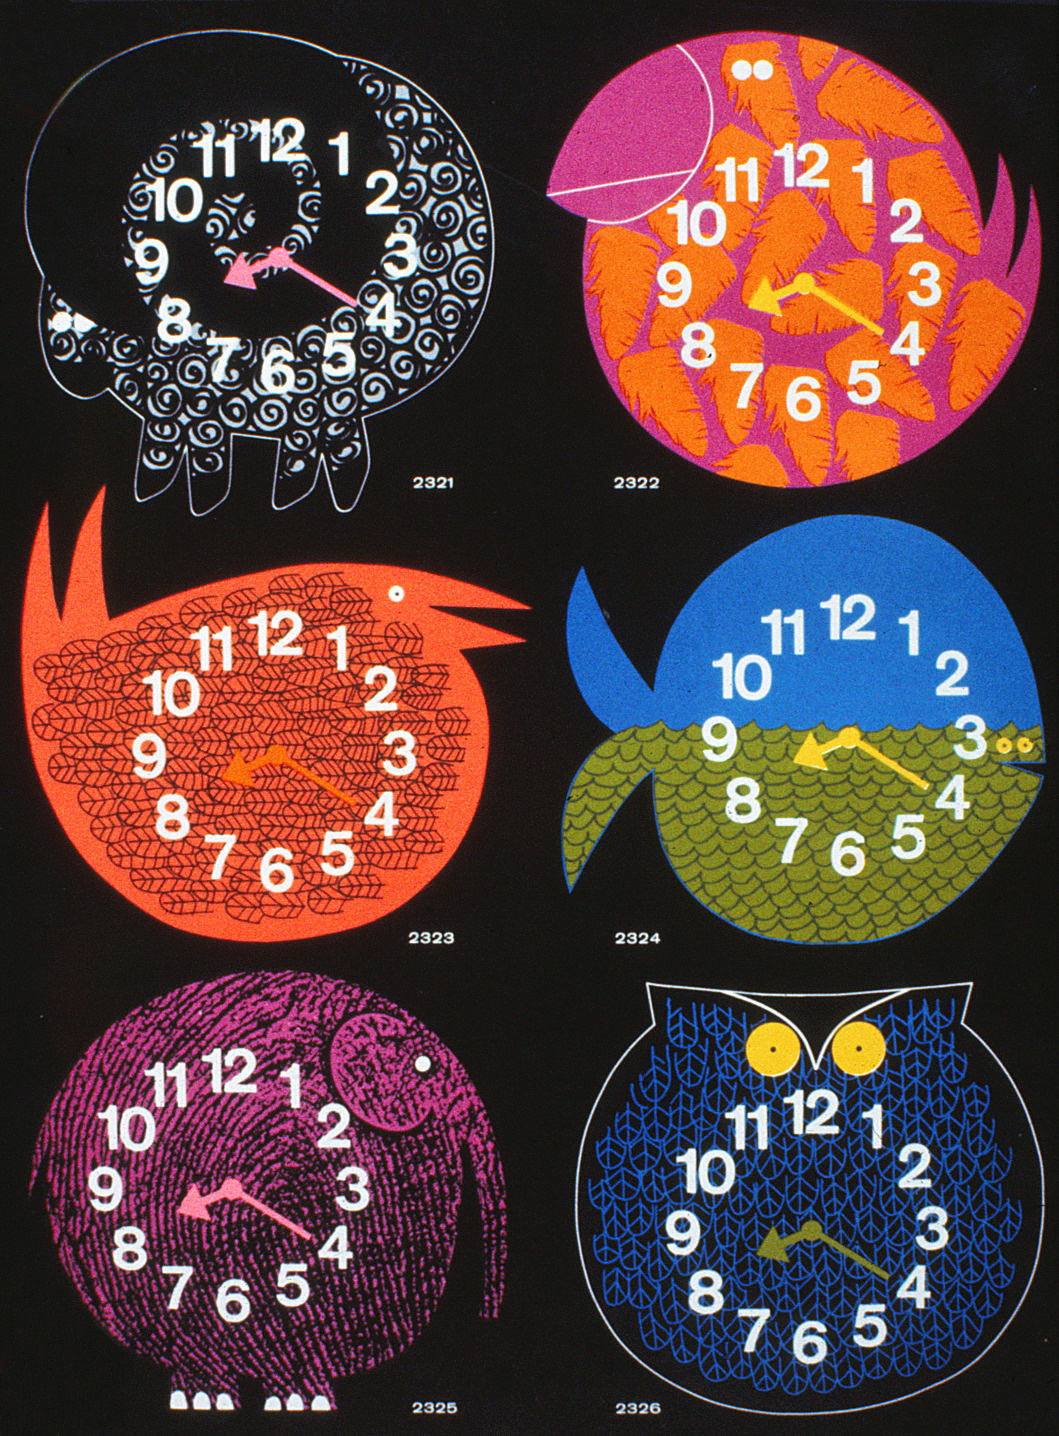 The collection of Zoo Timer clocks showing 6 different designs.